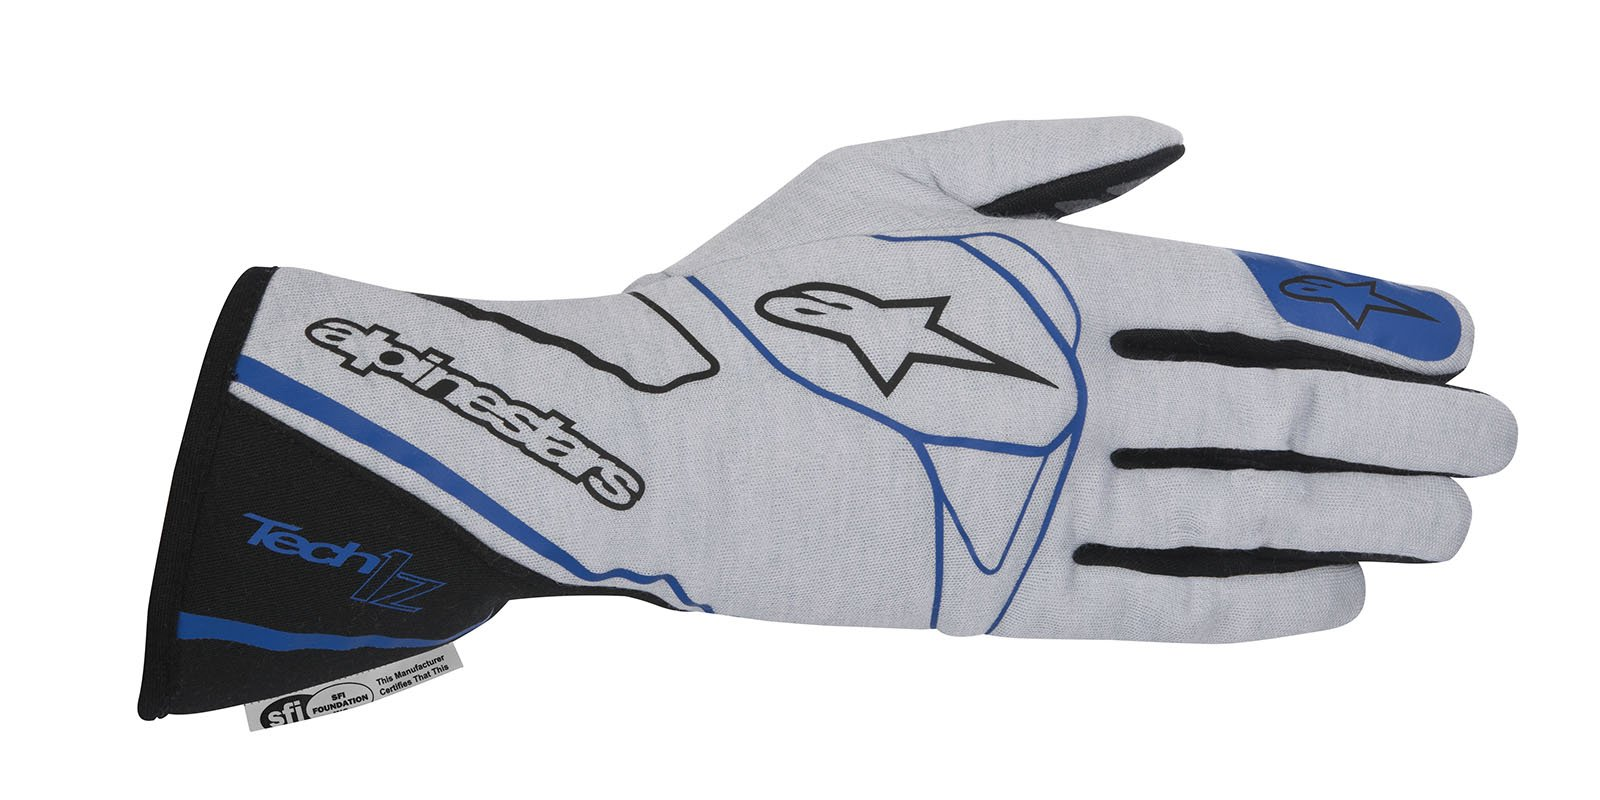 Alpinestars 2017 Tech 1-Z Glove - Size Medium - Silver/Black/Blue - SFI 3.3 LEVEL 5/FIA 8856-2000 (3550217-1091-M)